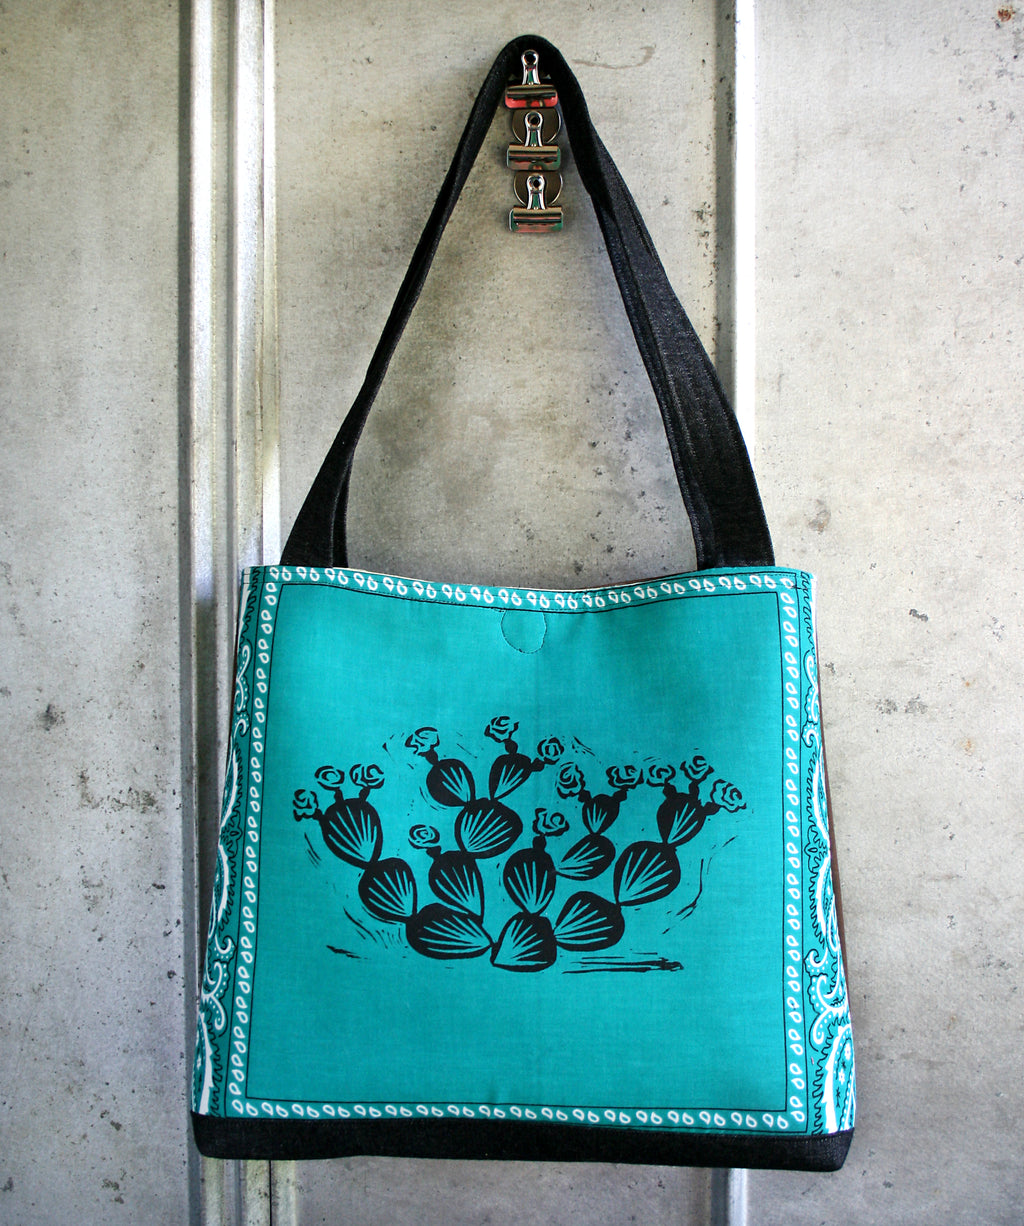 Prickly Pear tote in teal